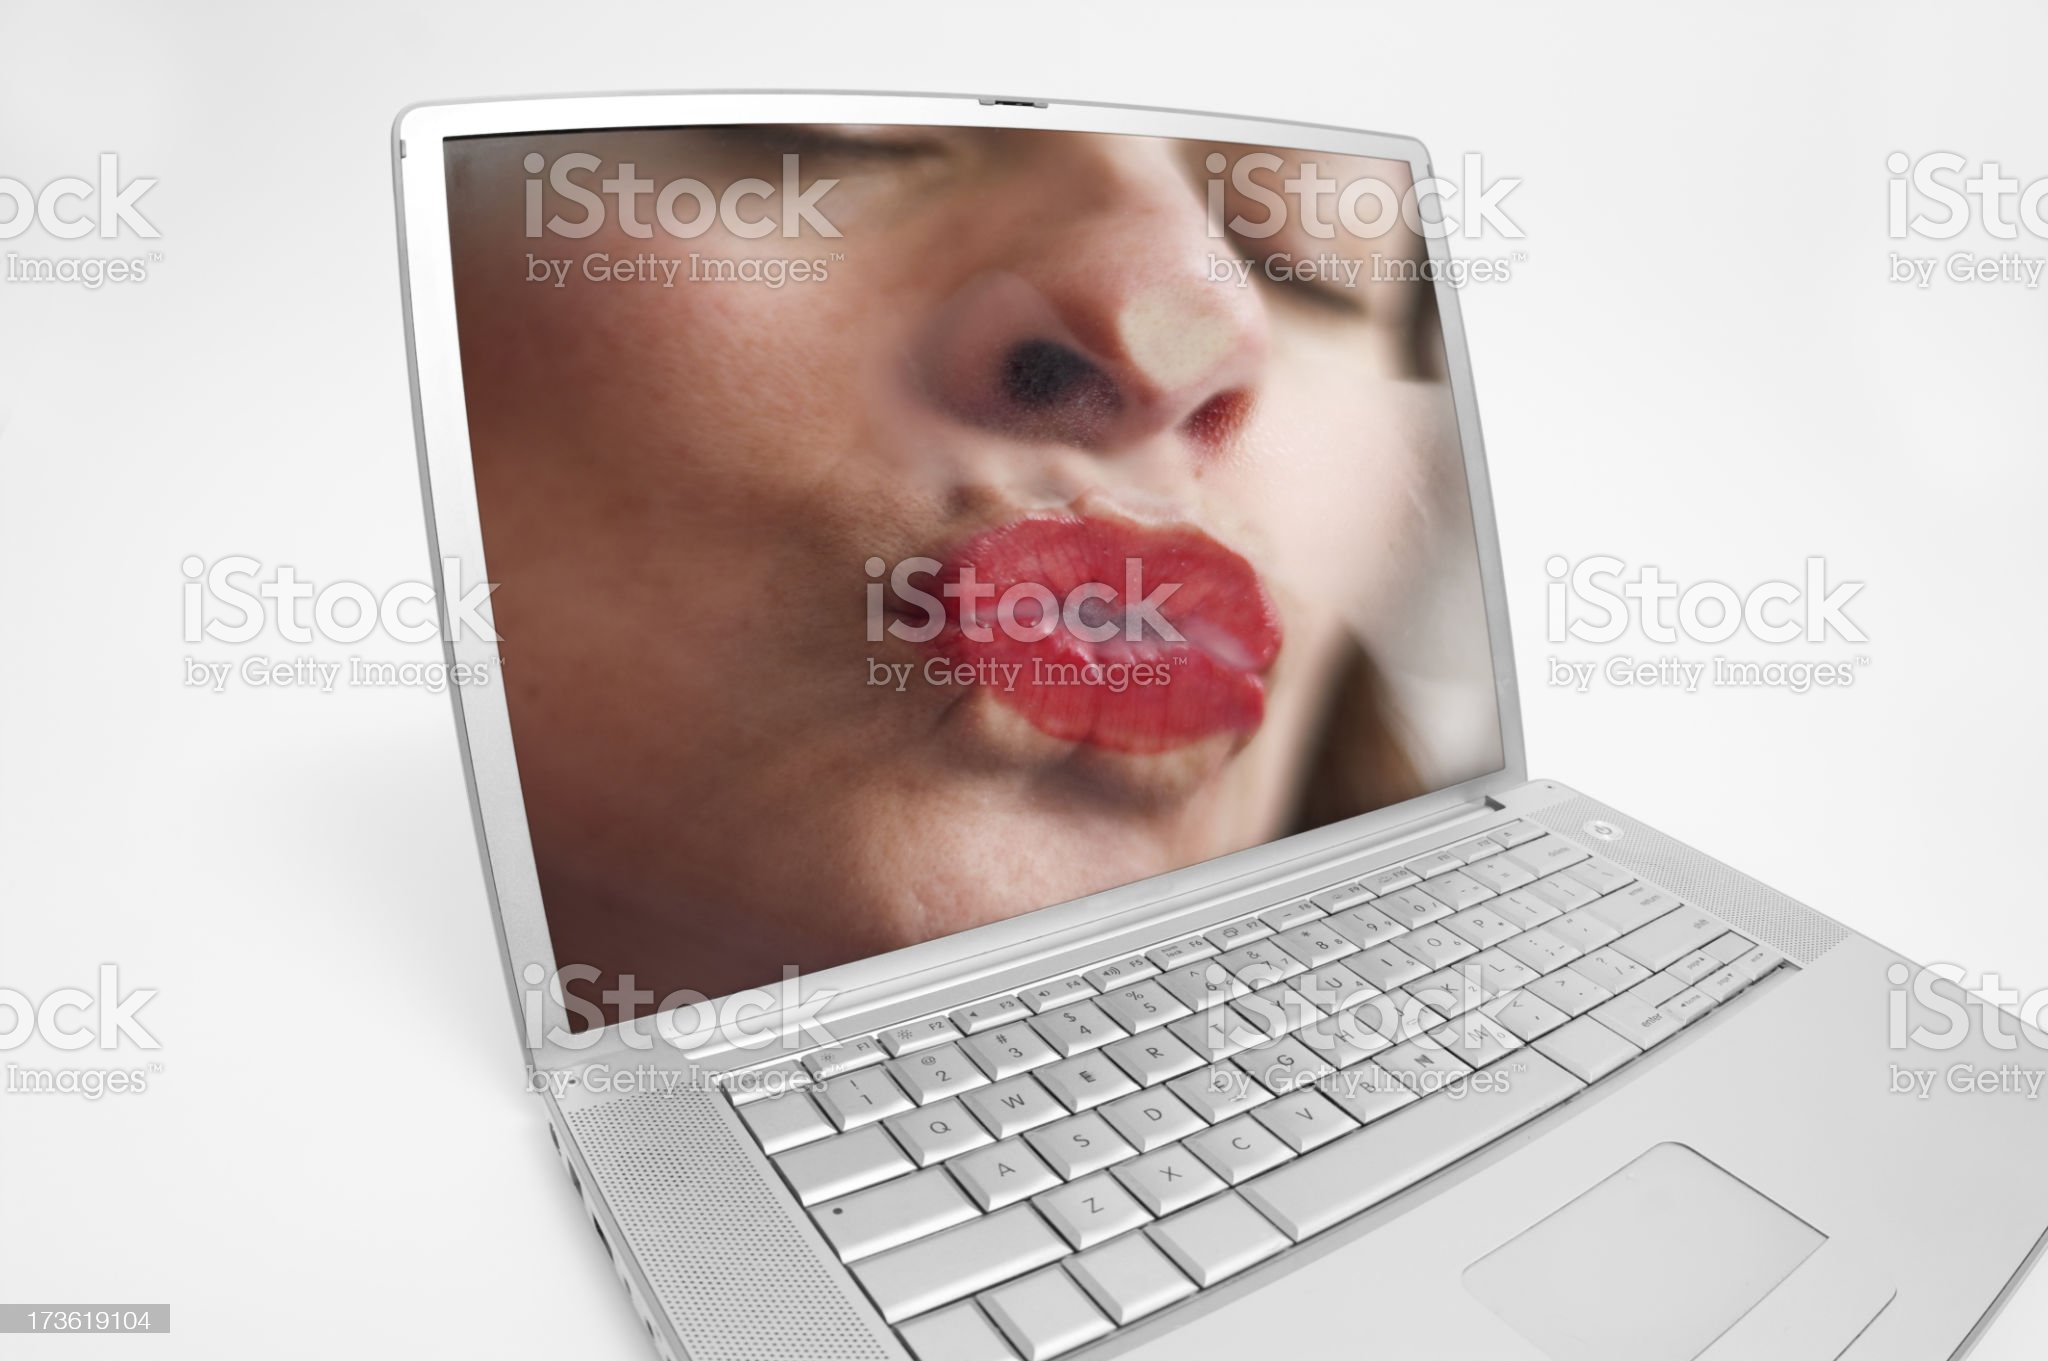 Digital kiss — online romance? royalty-free stock photo